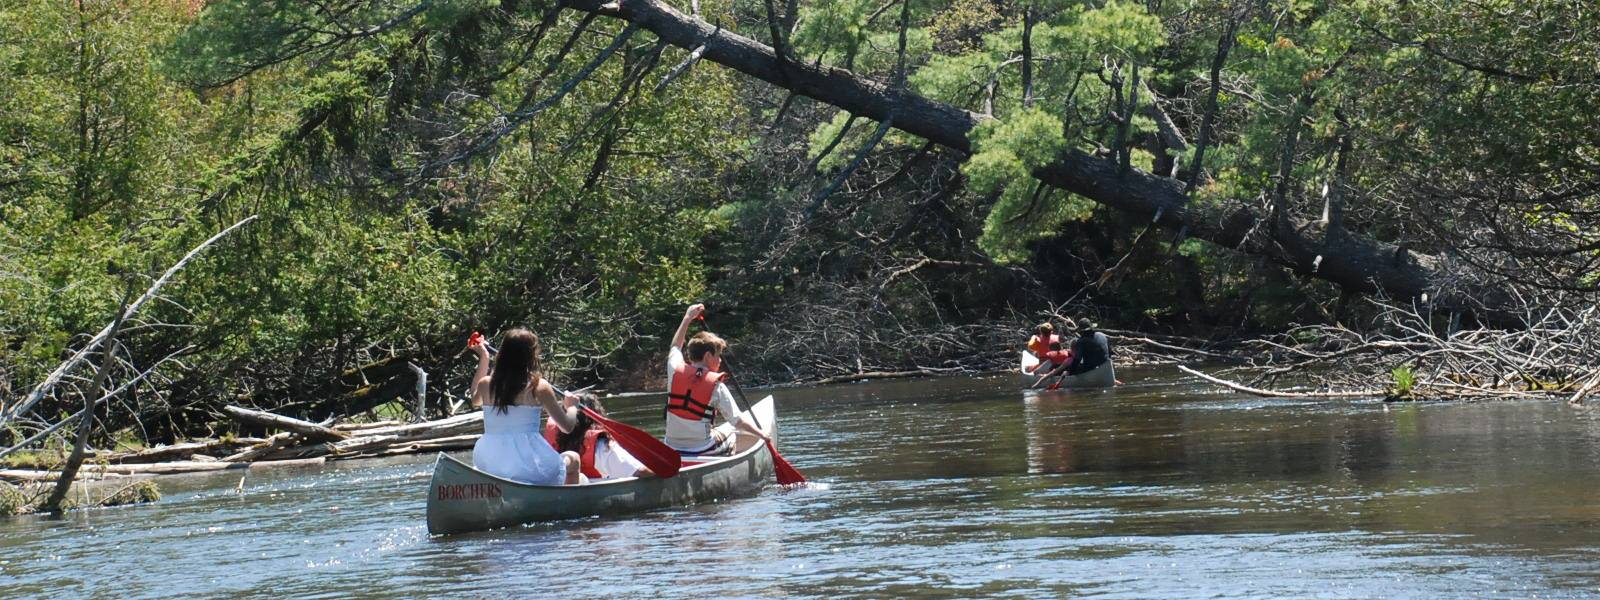 Grayling Canoe & Kayak Rental on AuSable River | Bed & Breakfast